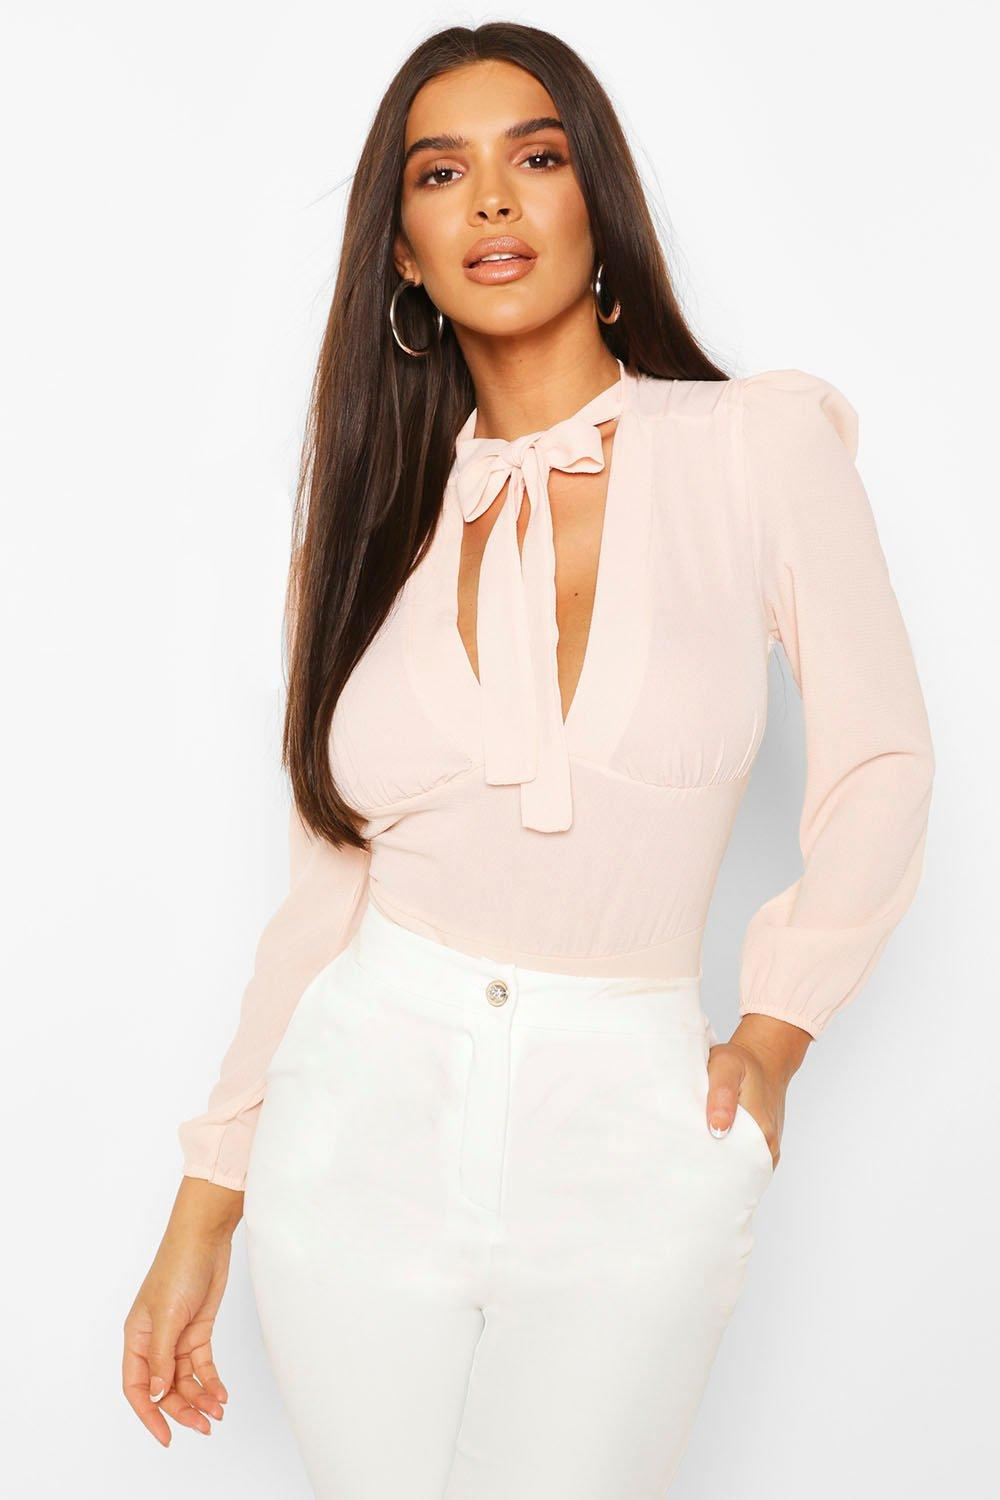 boohoo Womens Pussybow V Neck Blouse Bodysuit - Pink - 8, Pink